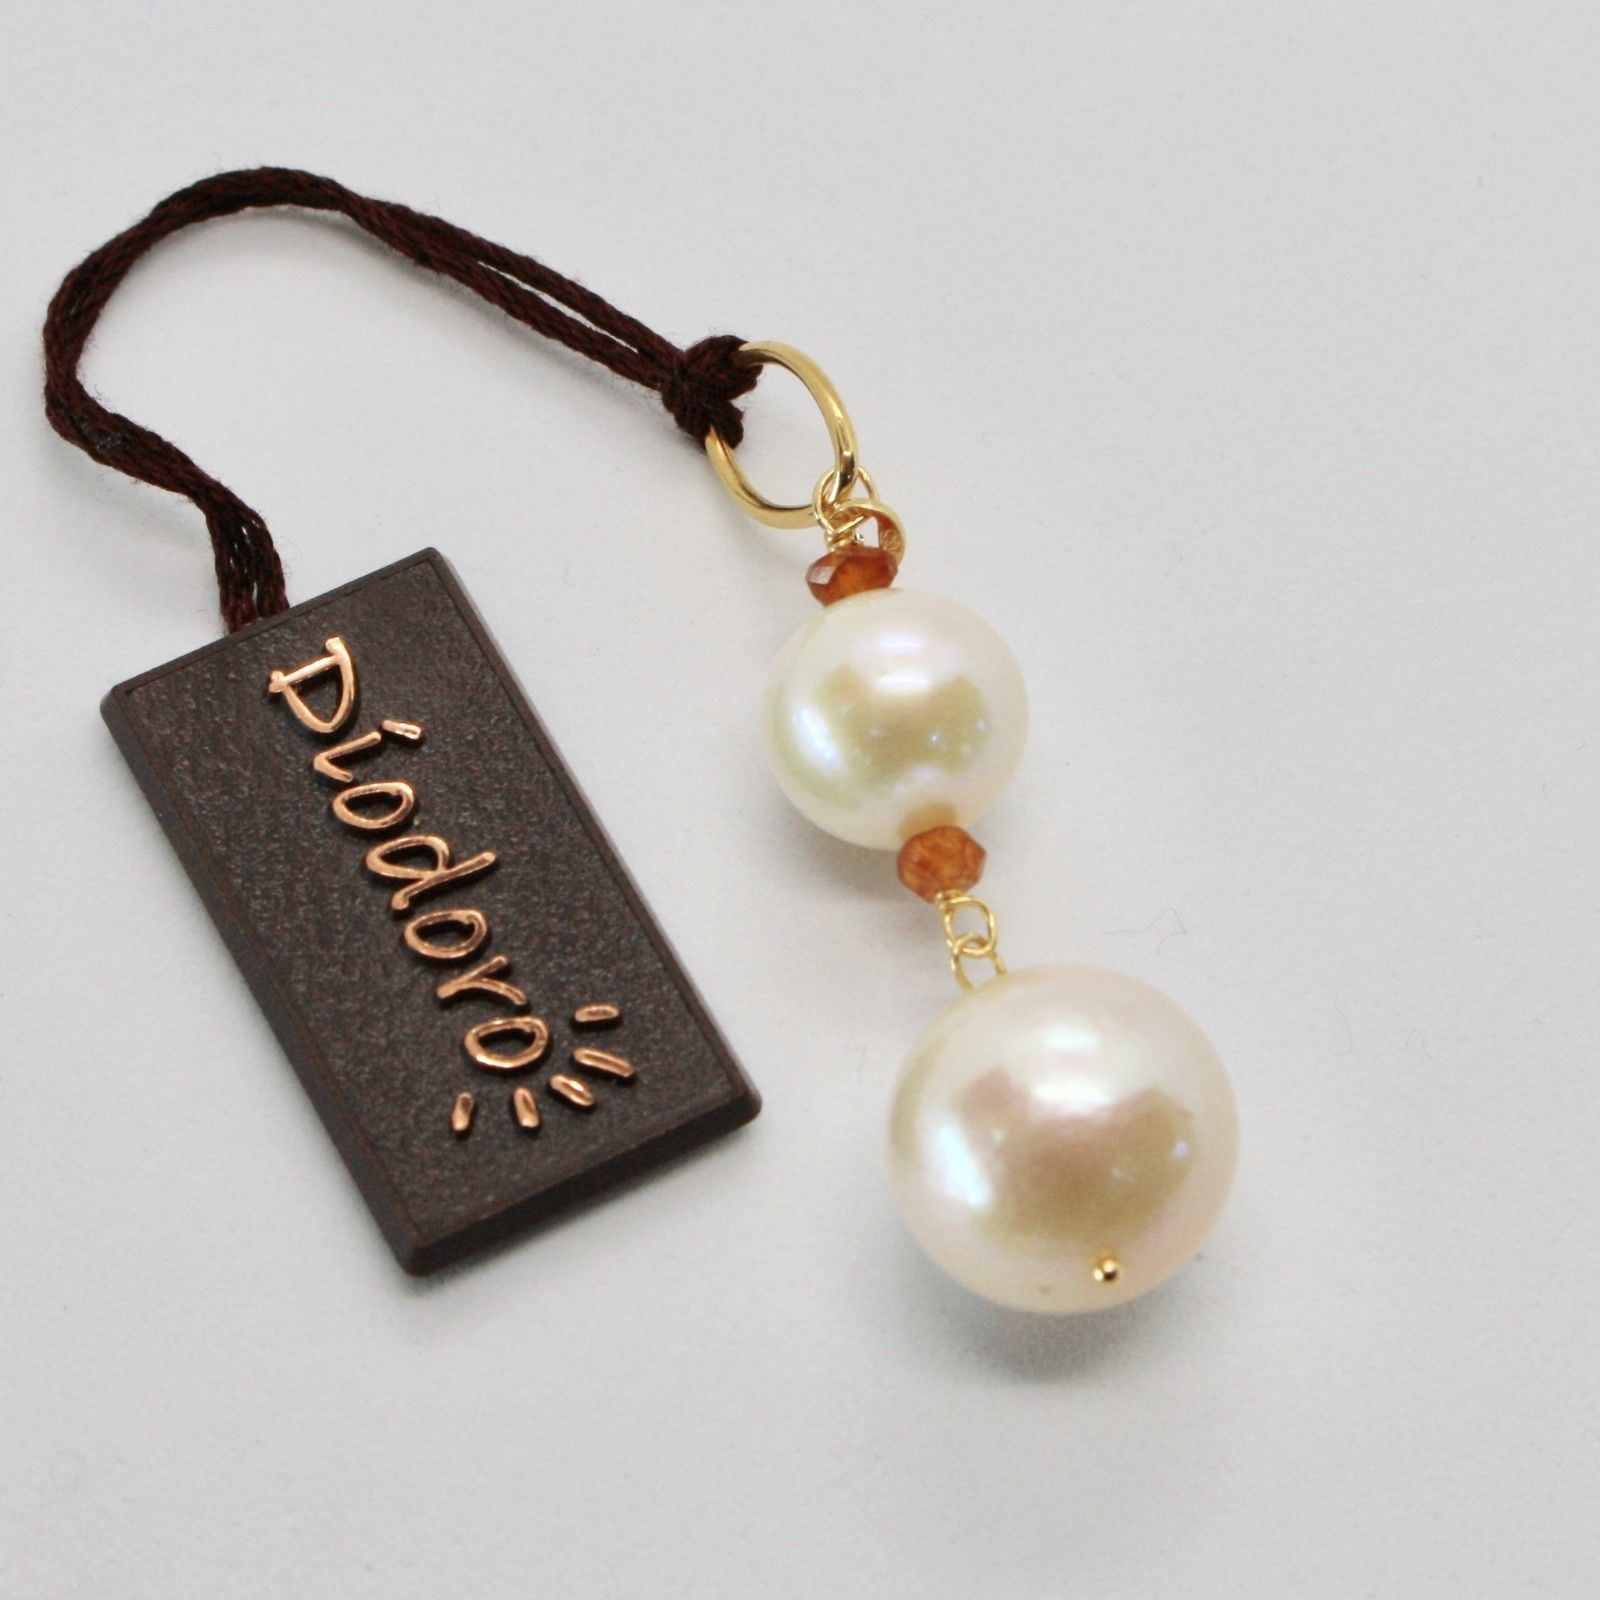 PENDANT YELLOW GOLD 18KT WITH WHITE PEARLS OF WATER DOLCE AND CITRINE NATURAL